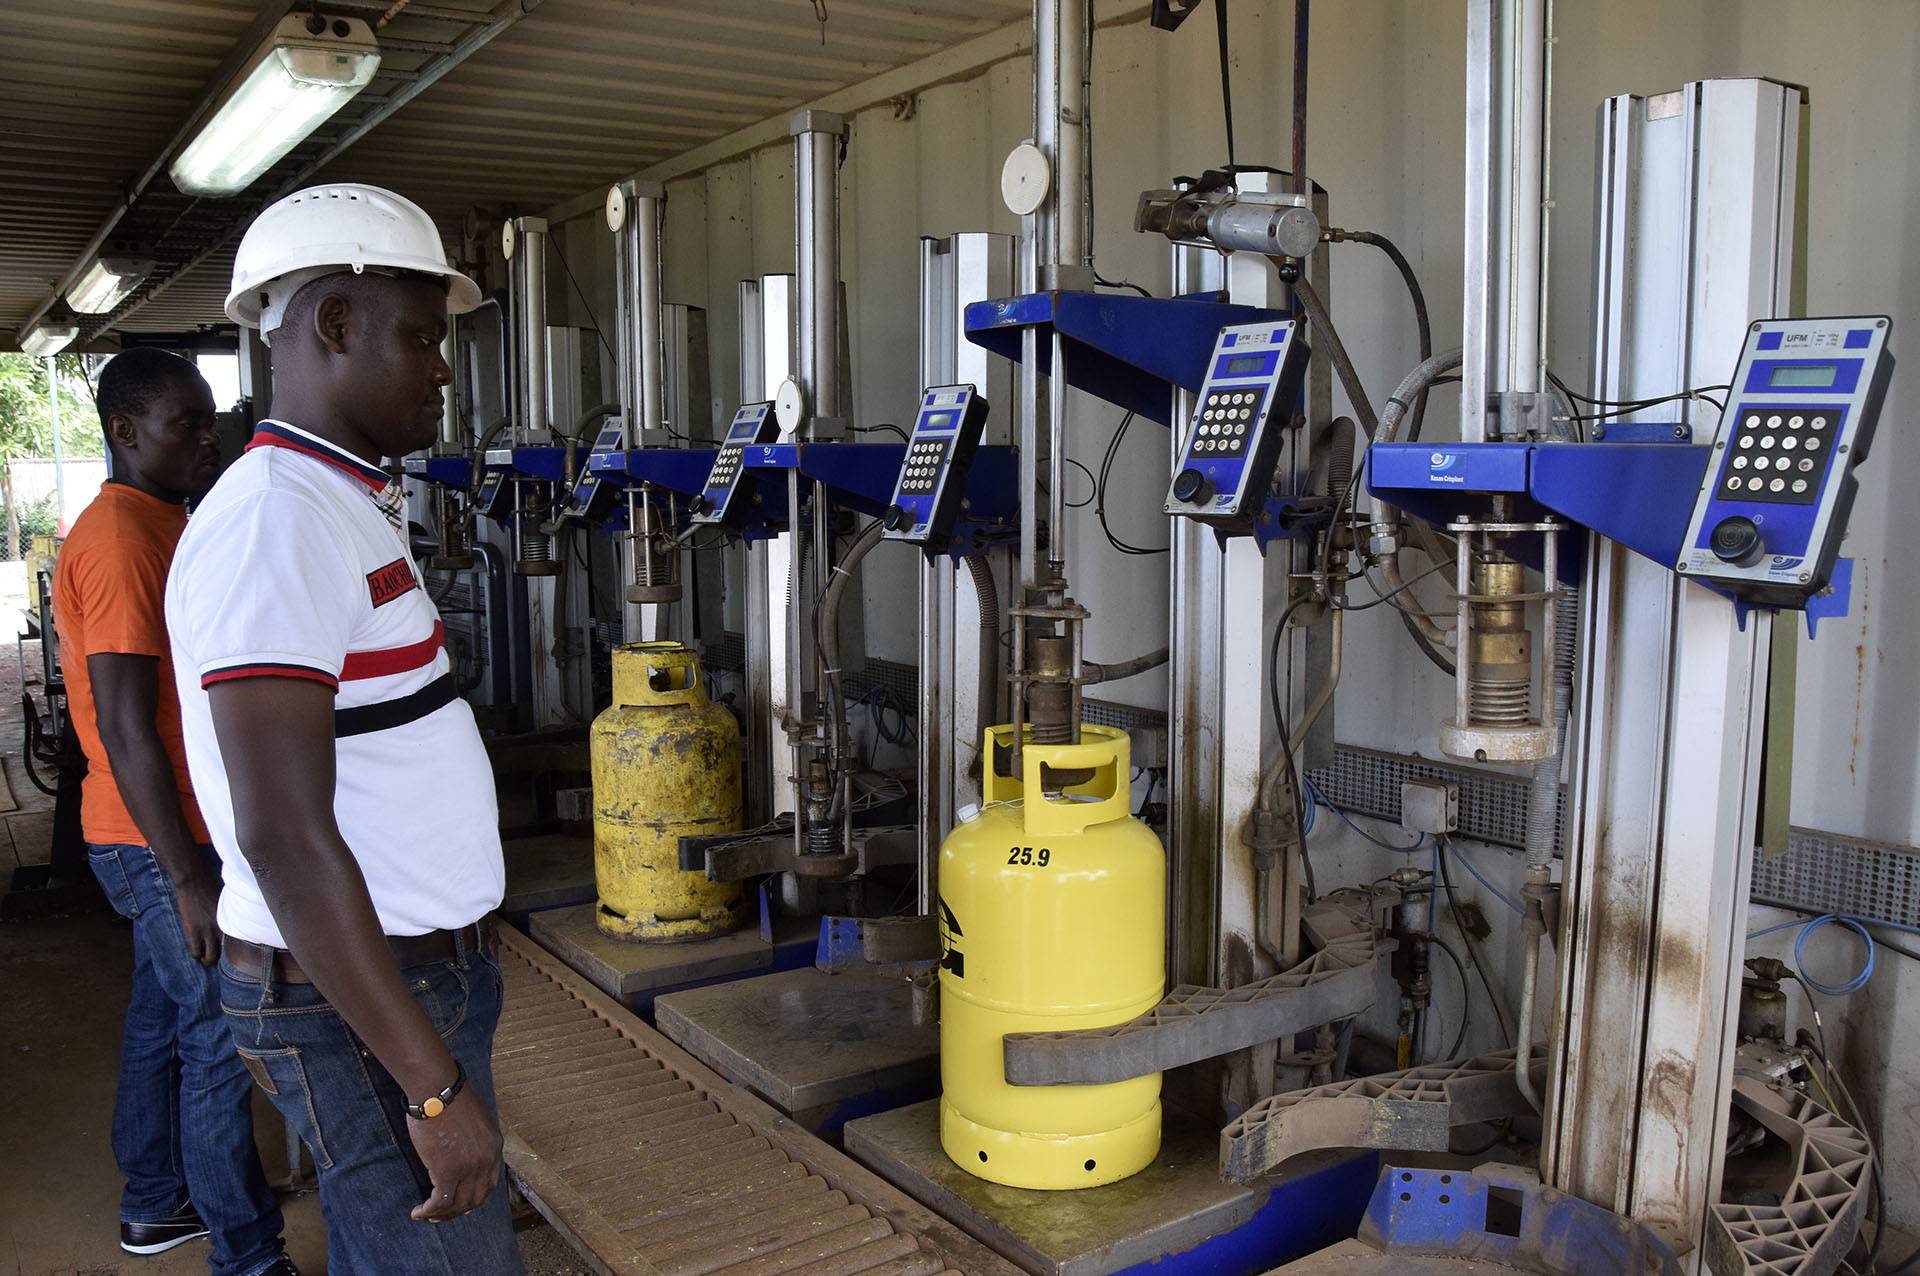 Filling LPG cylinders at the GlocalGaz plant, Limbe, Cameroon